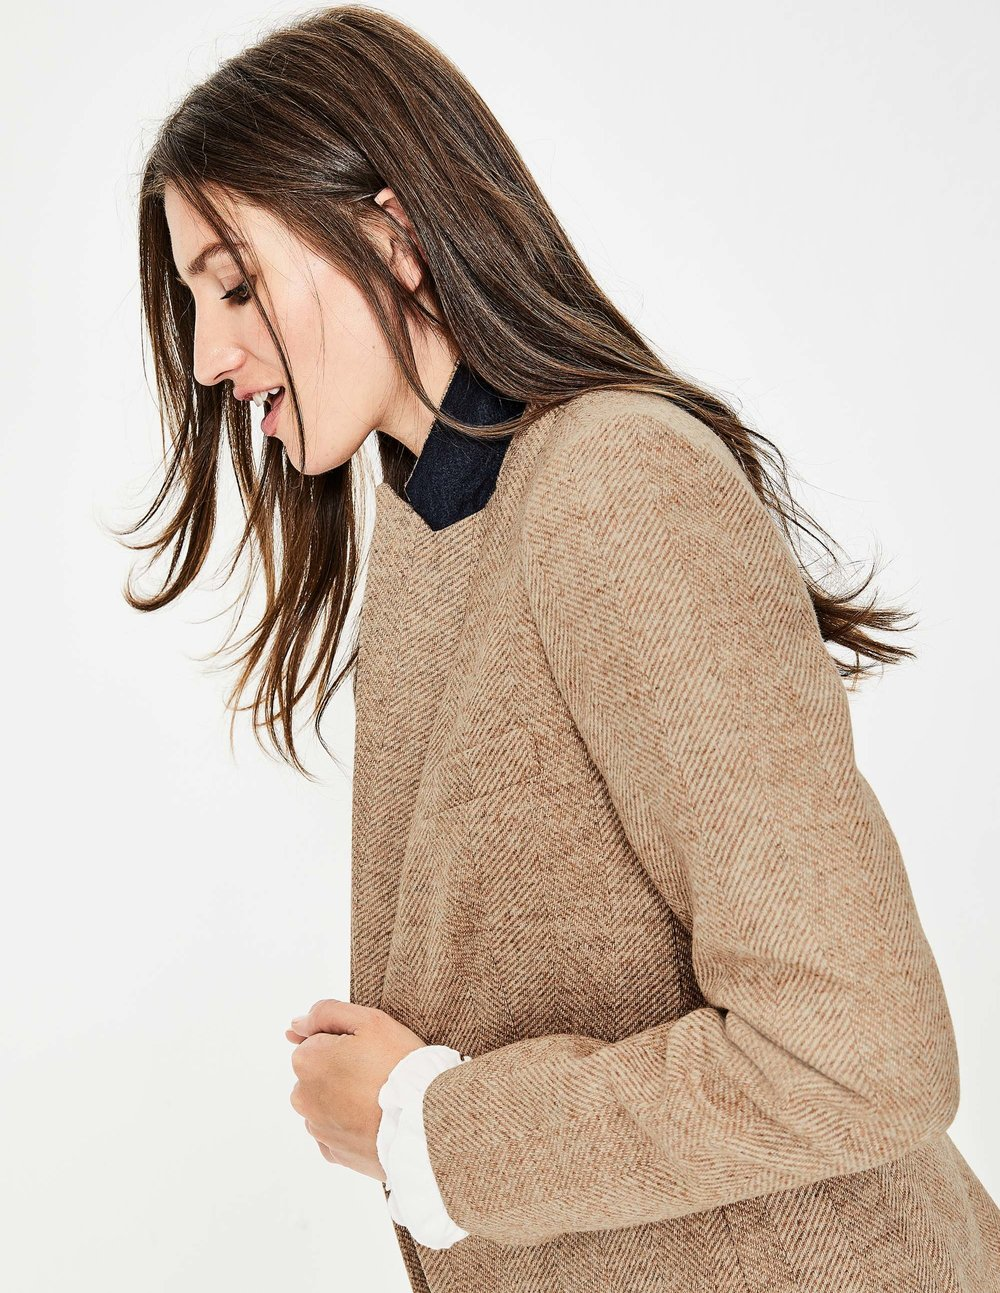 BATH BRITISH TWEED BLAZER. Available in multiple colors. Boden. Was $198.00. Now $99.00 To $138.60.